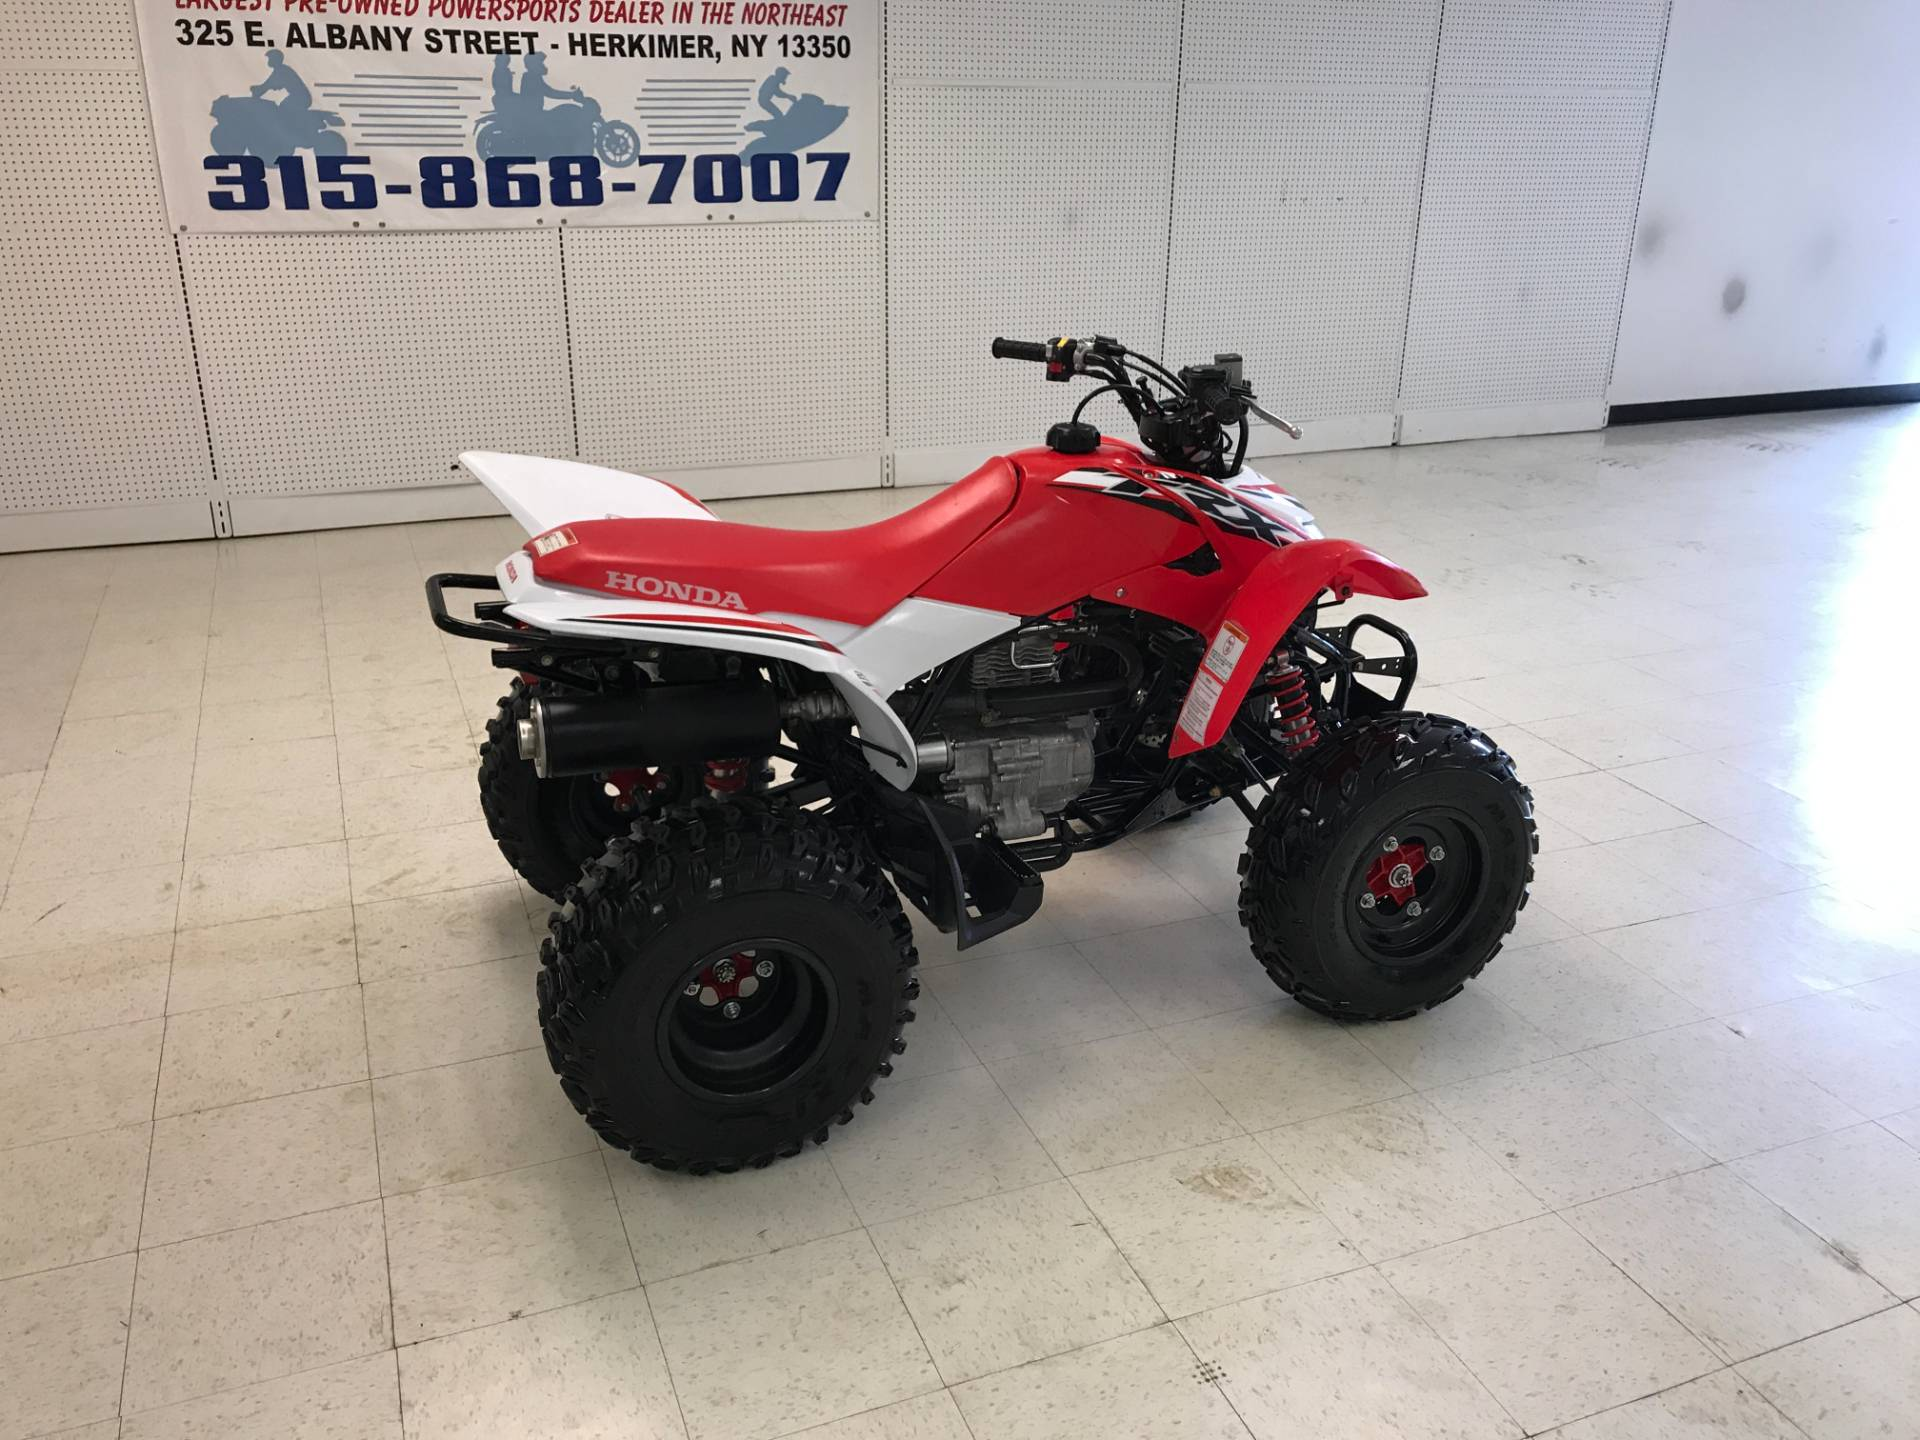 2016 Honda TRX250X SE in Herkimer, New York